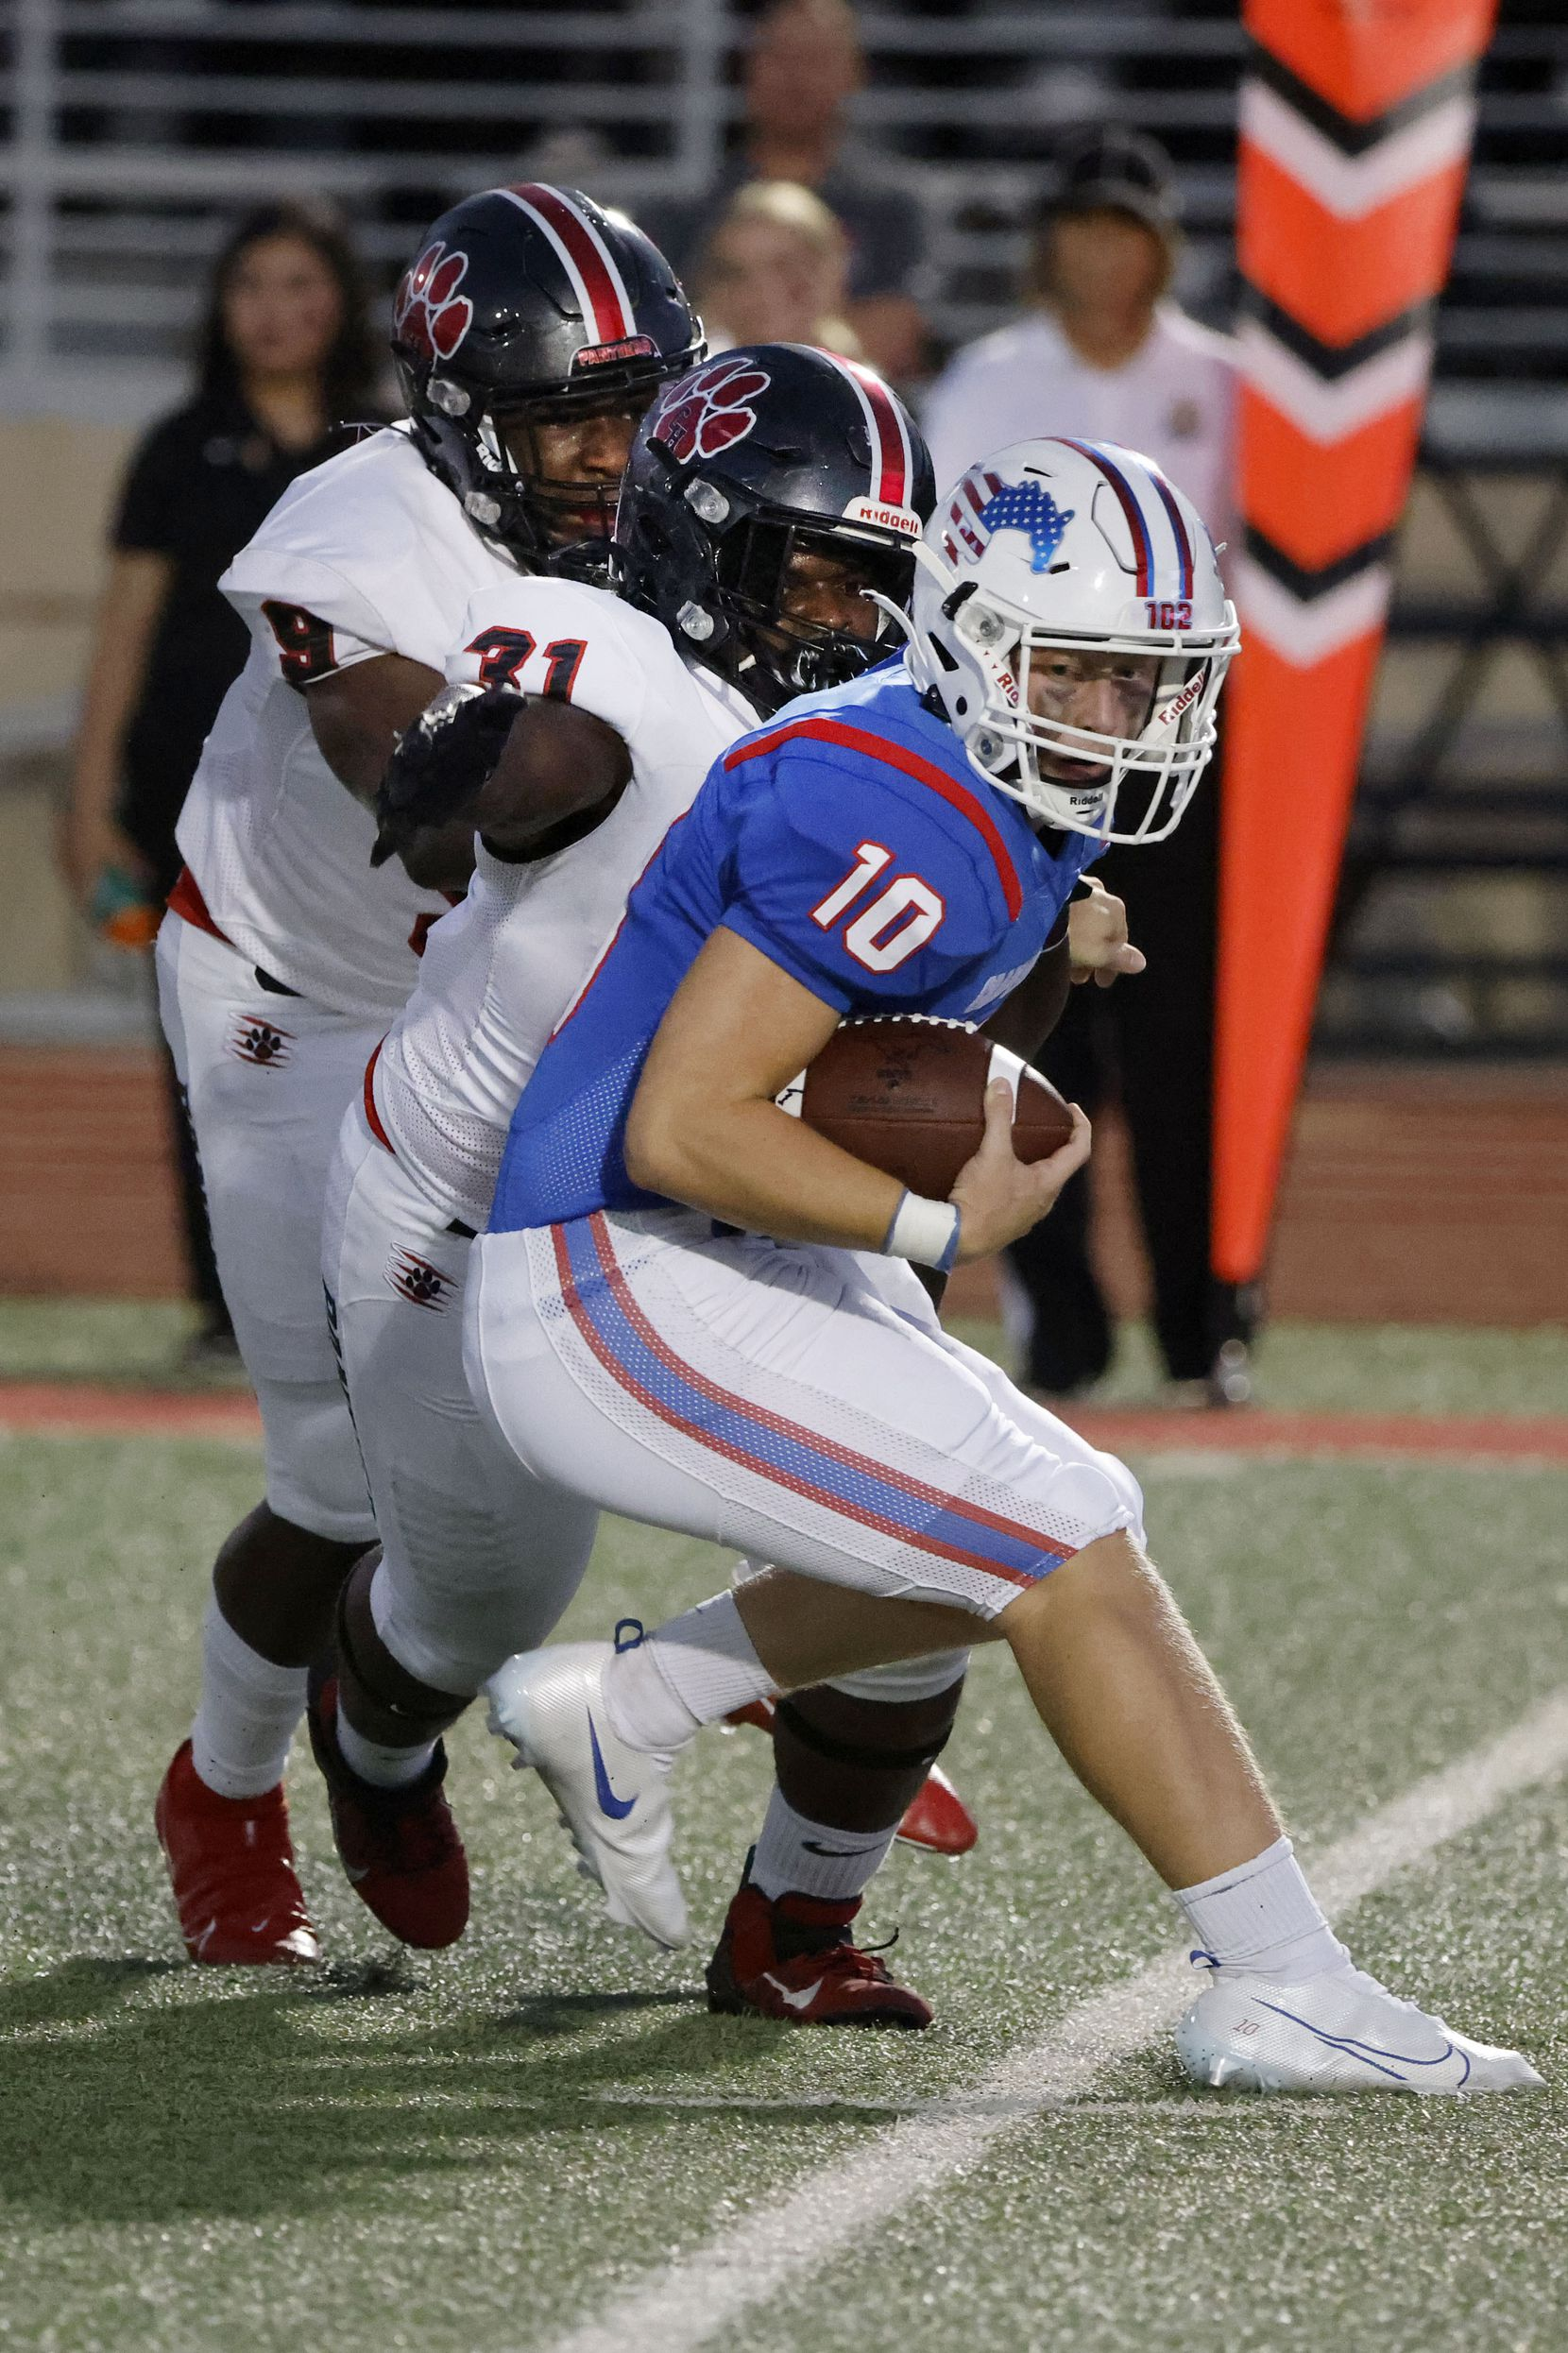 Grapevine quarterback Colt Mercer (10) is sacked by Colleyville Heritage defender Elijah Omar (31) with the assist of Garrett Finley (9) during the first half of their high school football game in Grapevine, Texas on Aug. 27, 2021. (Michael Ainsworth/Special Contributor)